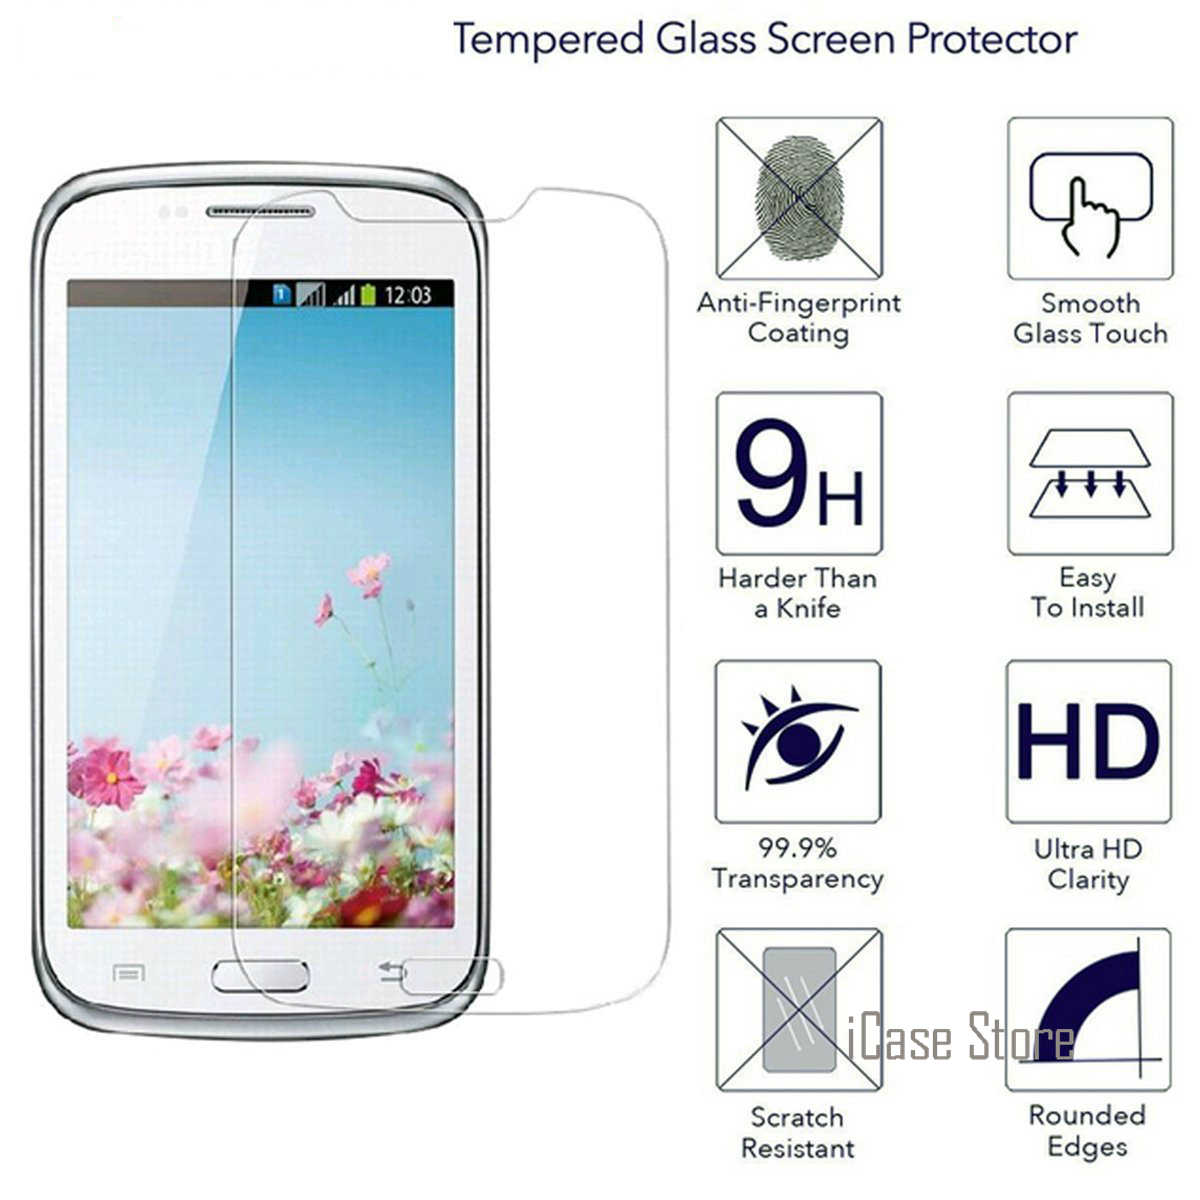 9H Tempered Glass Premium Screen Protector For Samsung Galaxy Core GT-I8260 GT-I8262 Core Duos I8260 I8262 Protective Film